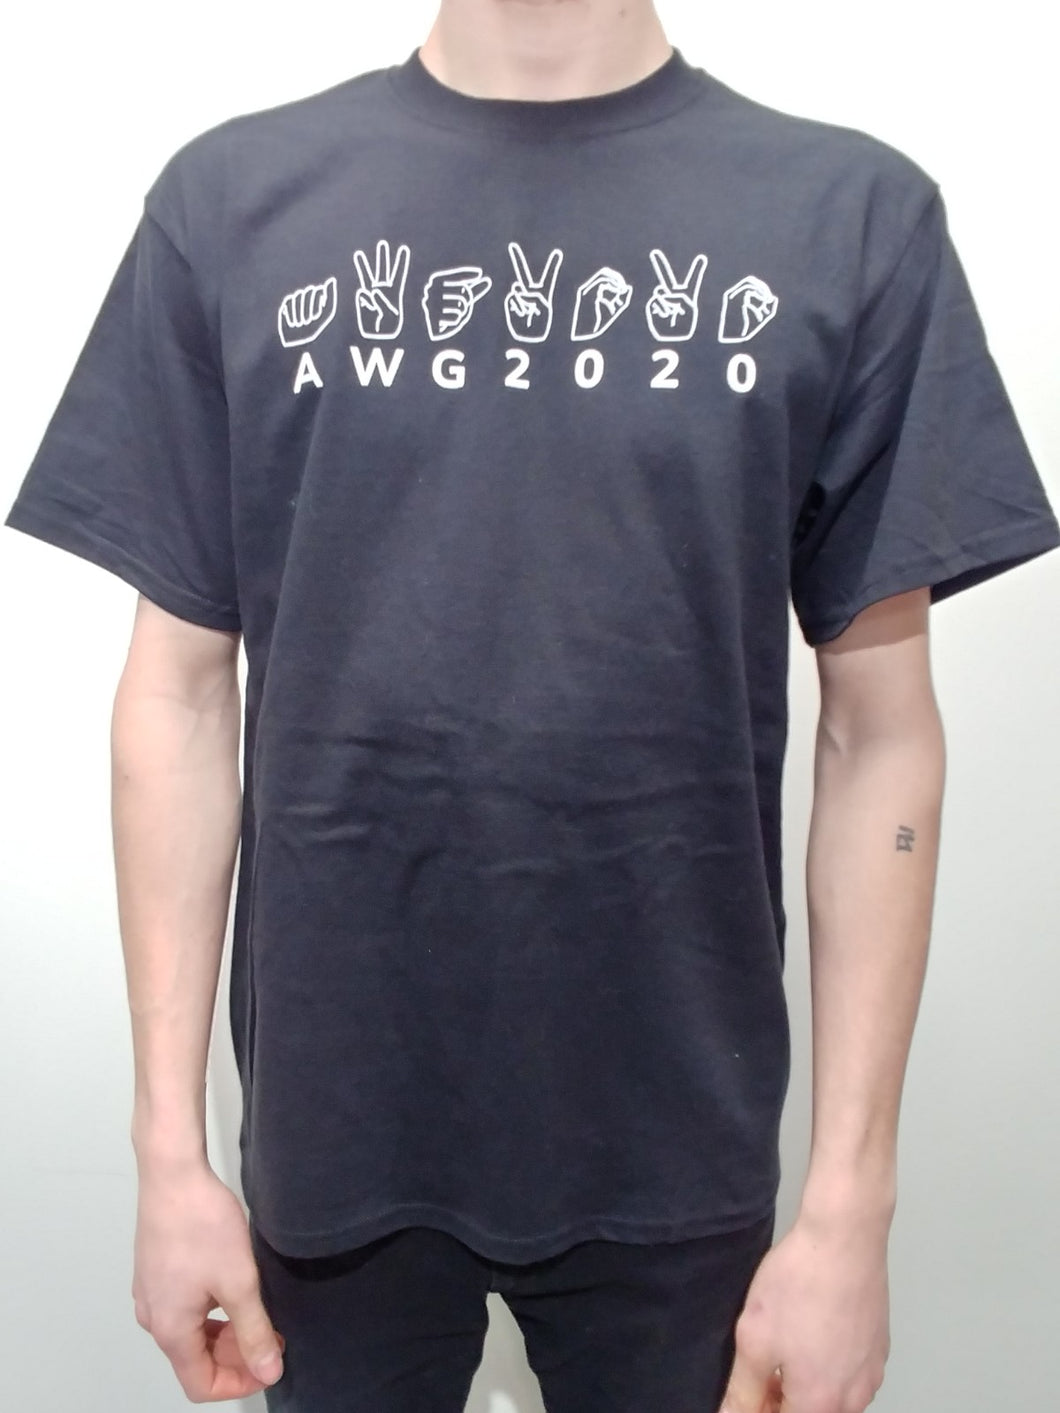 AWG Men's Sign Language T